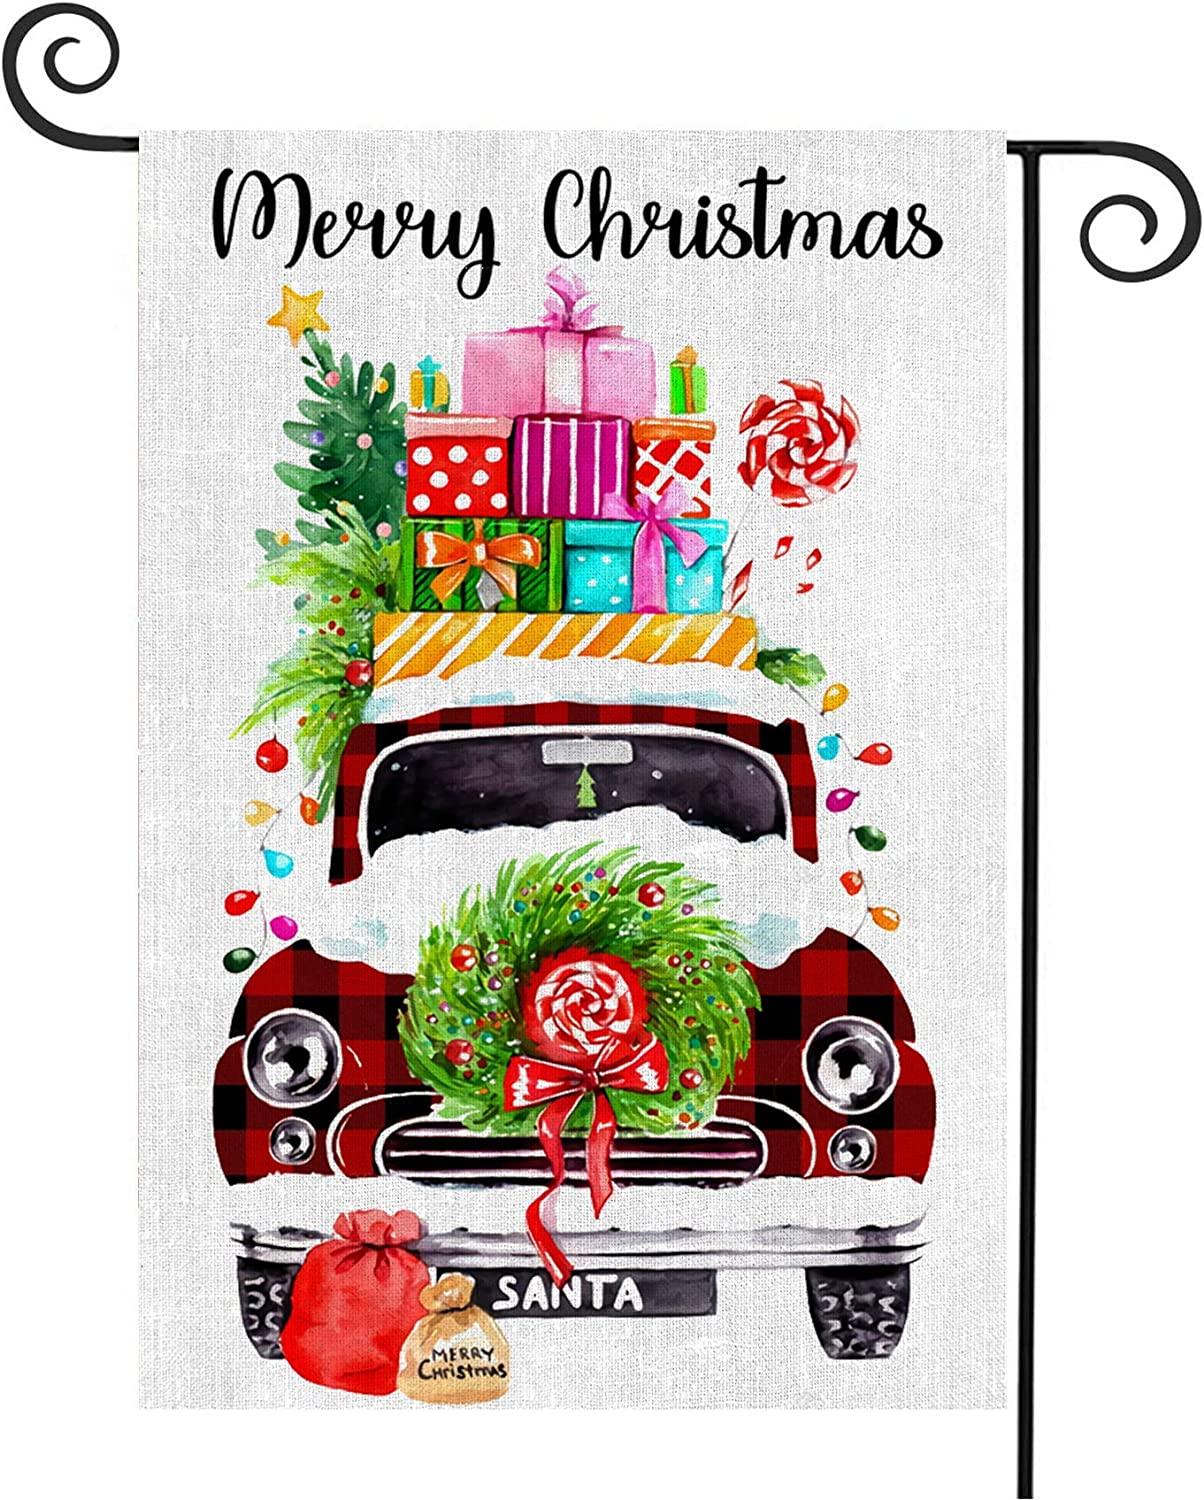 Probsin Merry Christmas Garden Flag Home Decorations Burlap Double Sided Red Buffalo Plaid Truck Tree Gifts Holiday Yard Sign Xmas Decor for Outdoor,Yard,Garden,Lawn